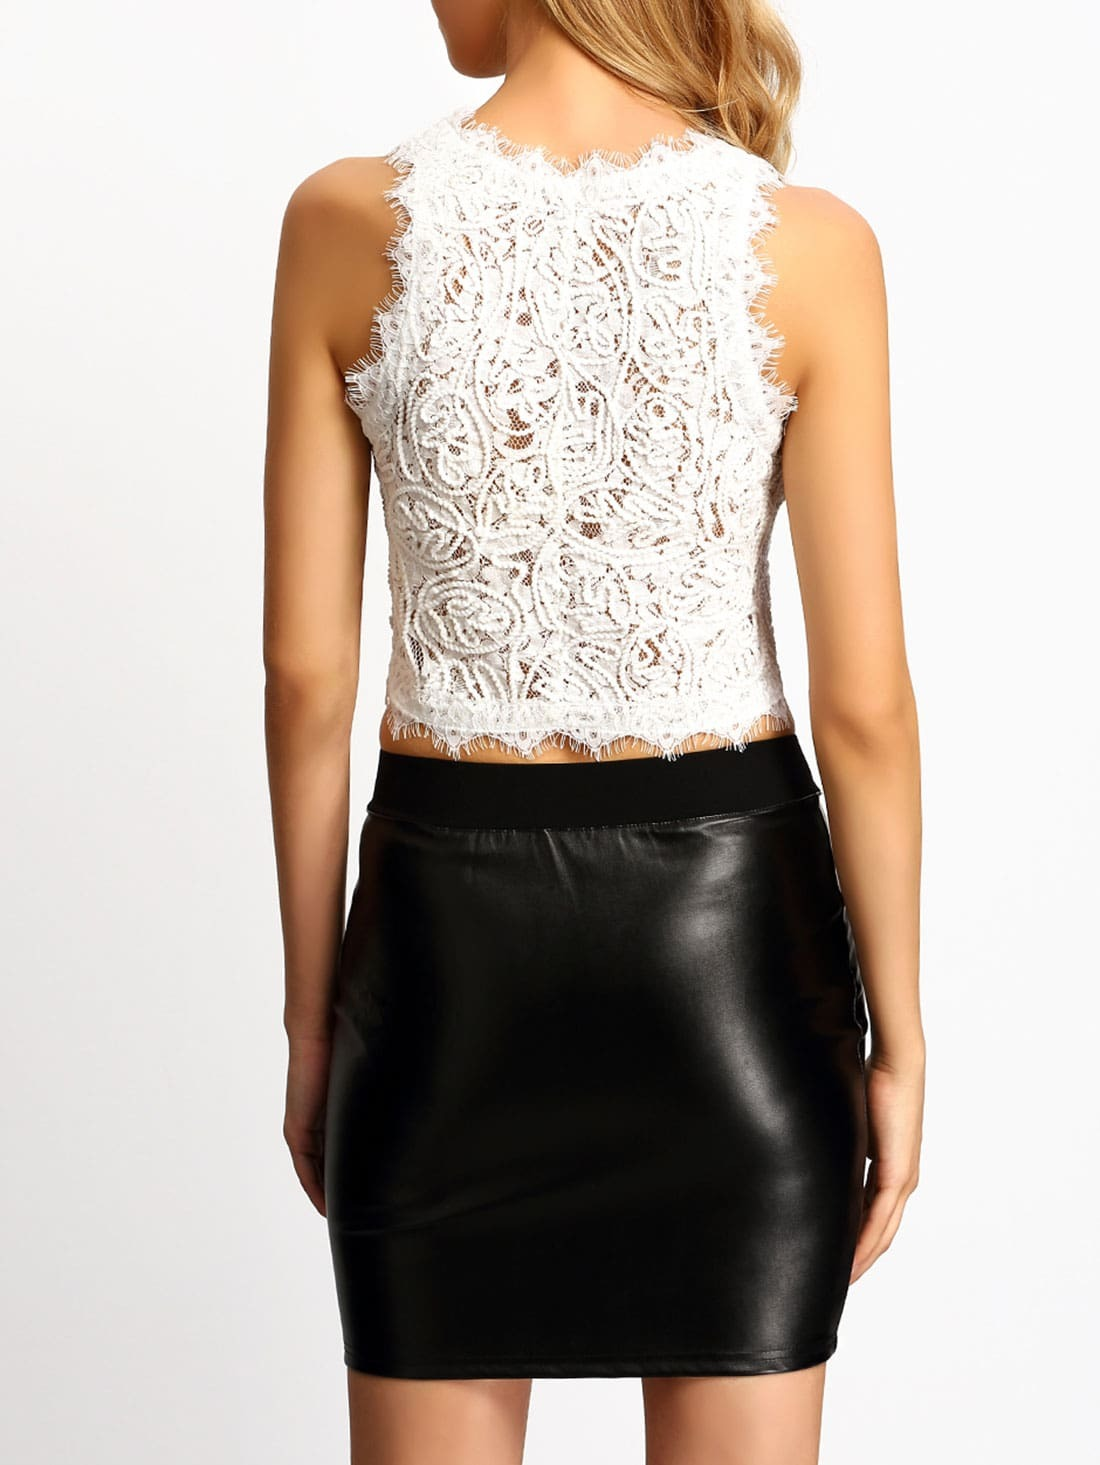 Free shipping LIMITED OFFER Cut Out Lace Tank Top in WHITE L with only $ online and shop other cheap Tank Top on sale at russia-youtube.tk Fashion Clothing Site with greatest number of Latest casual style Dresses as well as other categories such as .